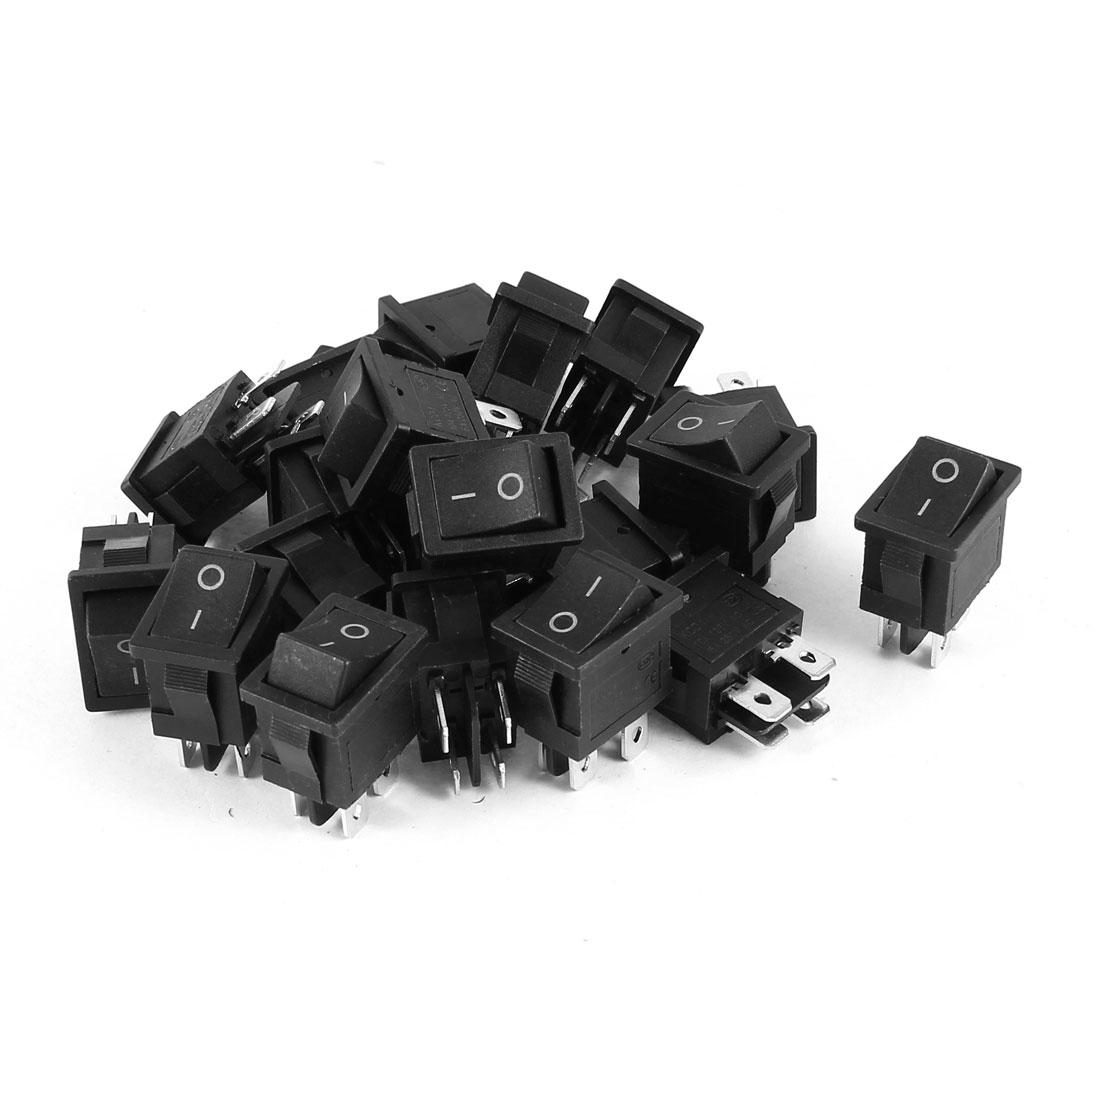 AC 250V 6A 125V 10A 4 Termials DPST ON/OFF 2-Positions Rocker Switch Black 20Pcs